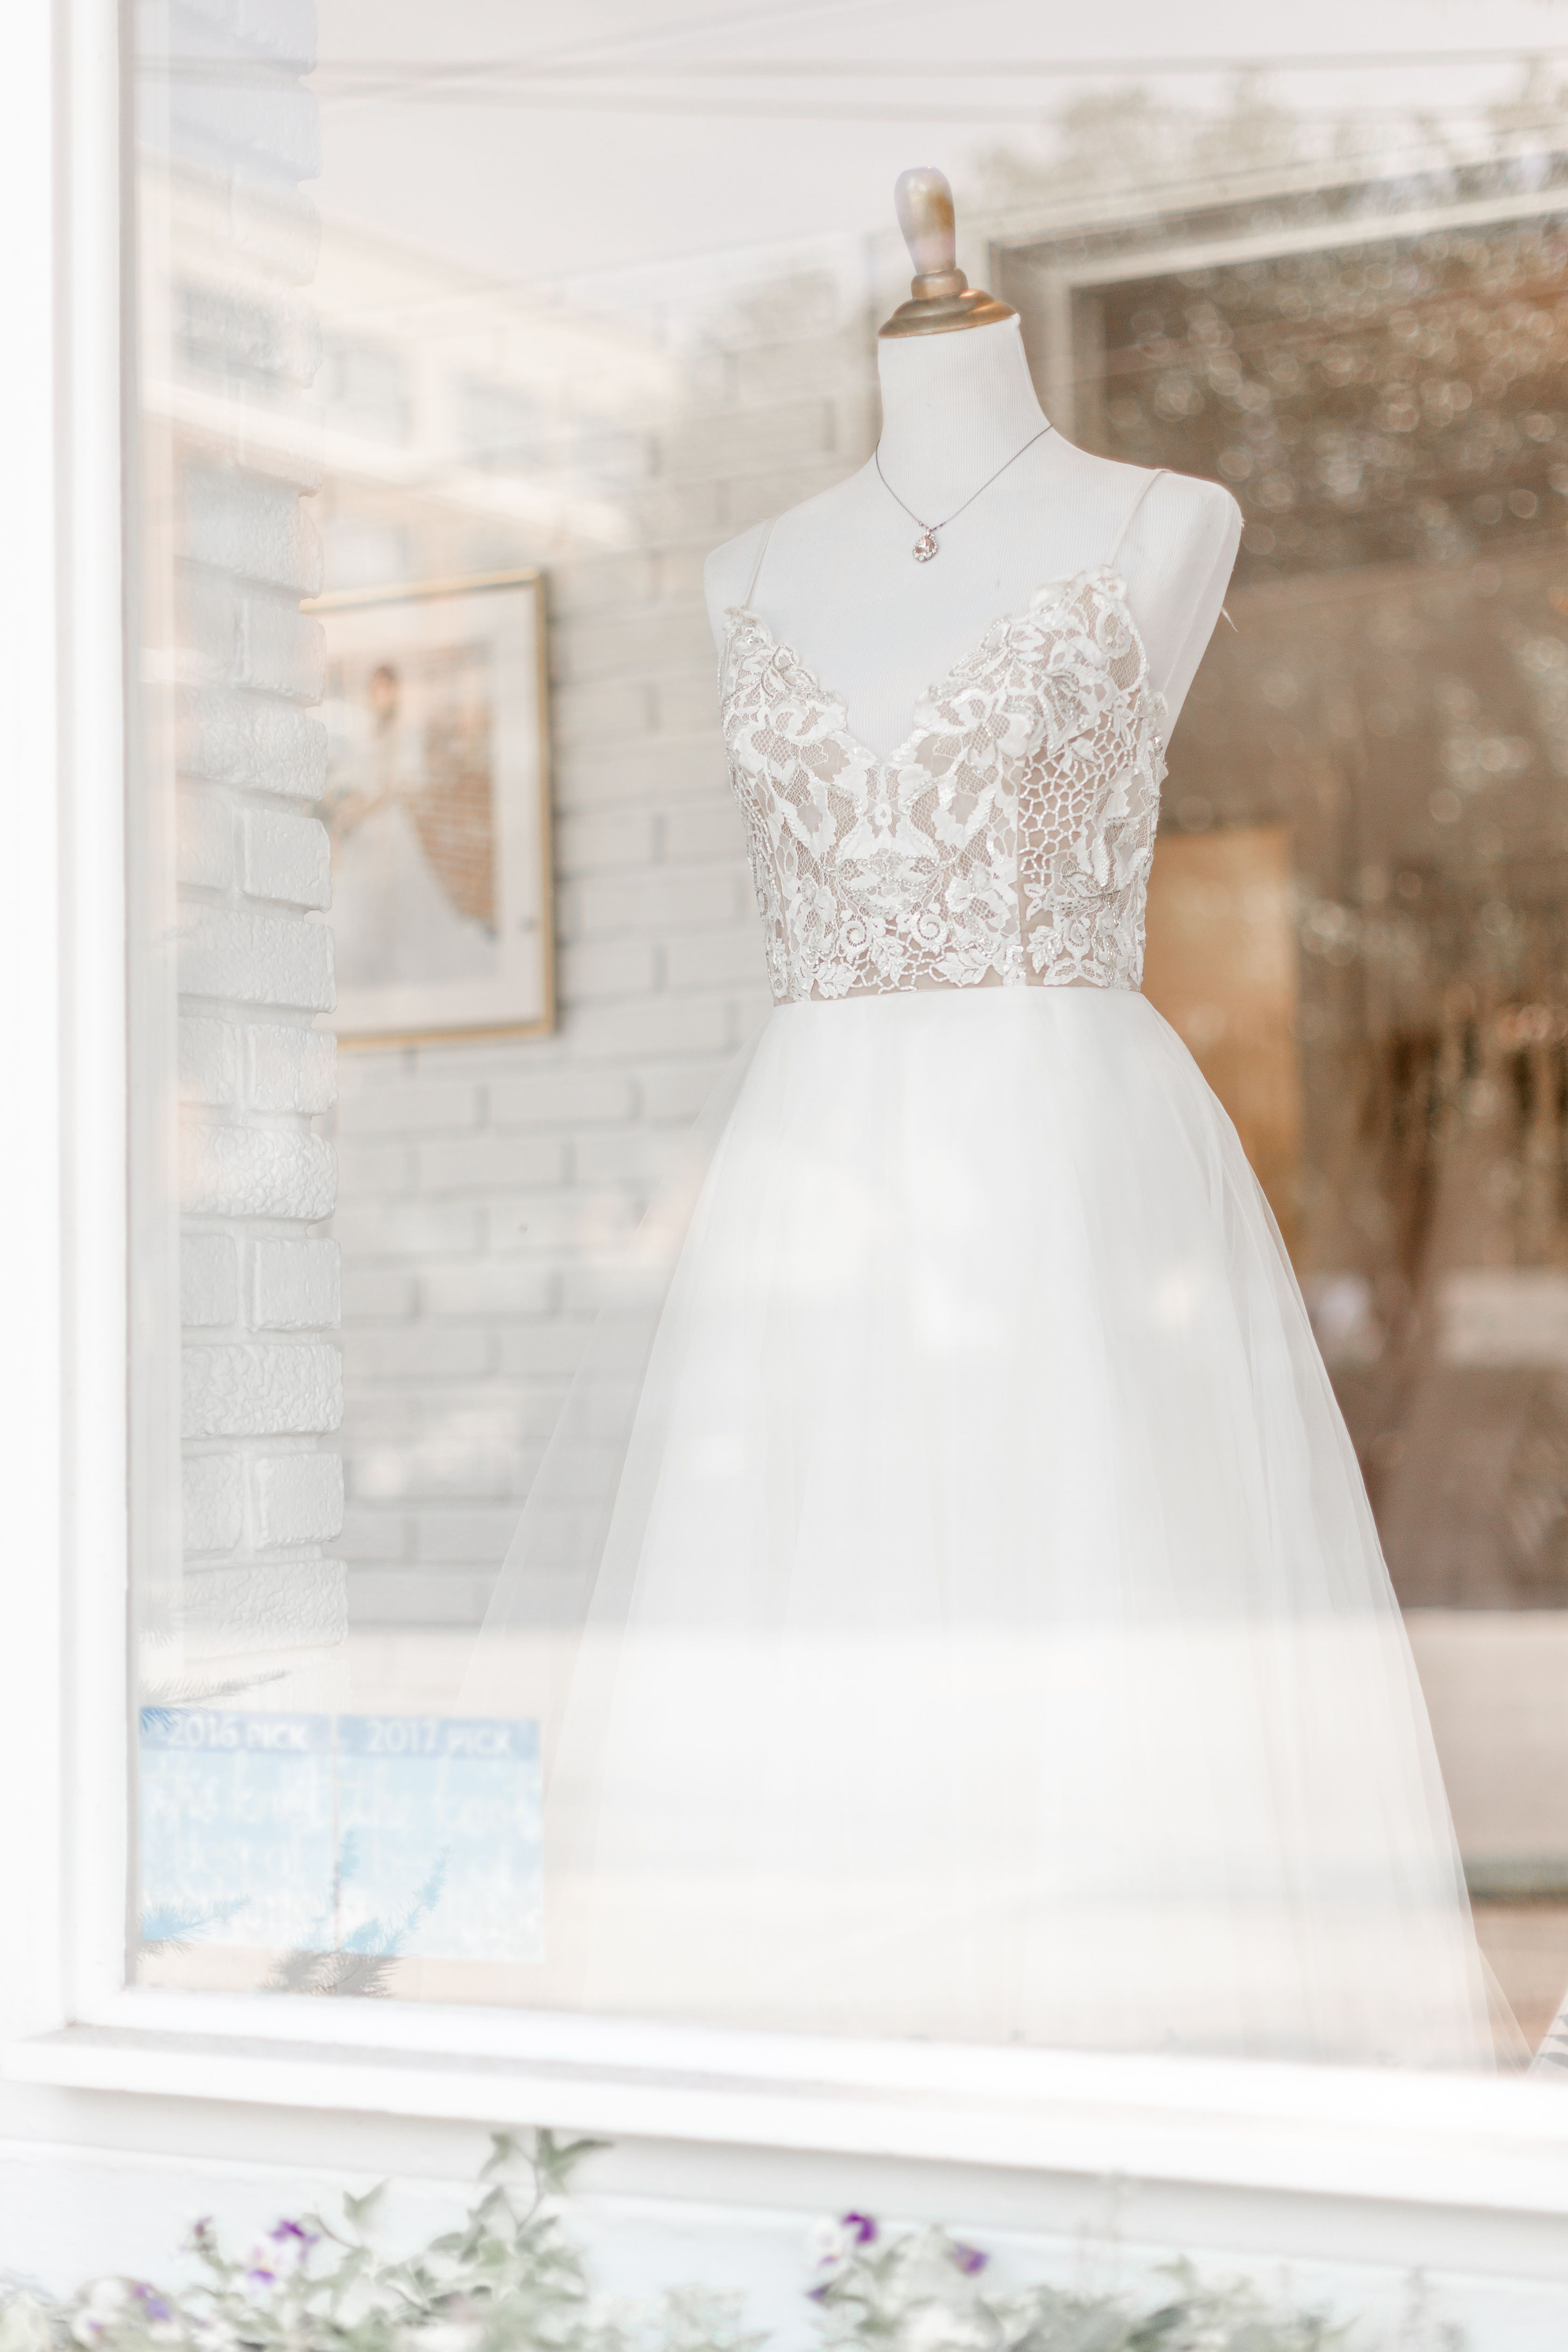 The White Magnolia Bridal Collection In Atlanta Georgia We Specialize In Providing Brides With A One On Haute Bride Bridal Collection Designer Wedding Gowns